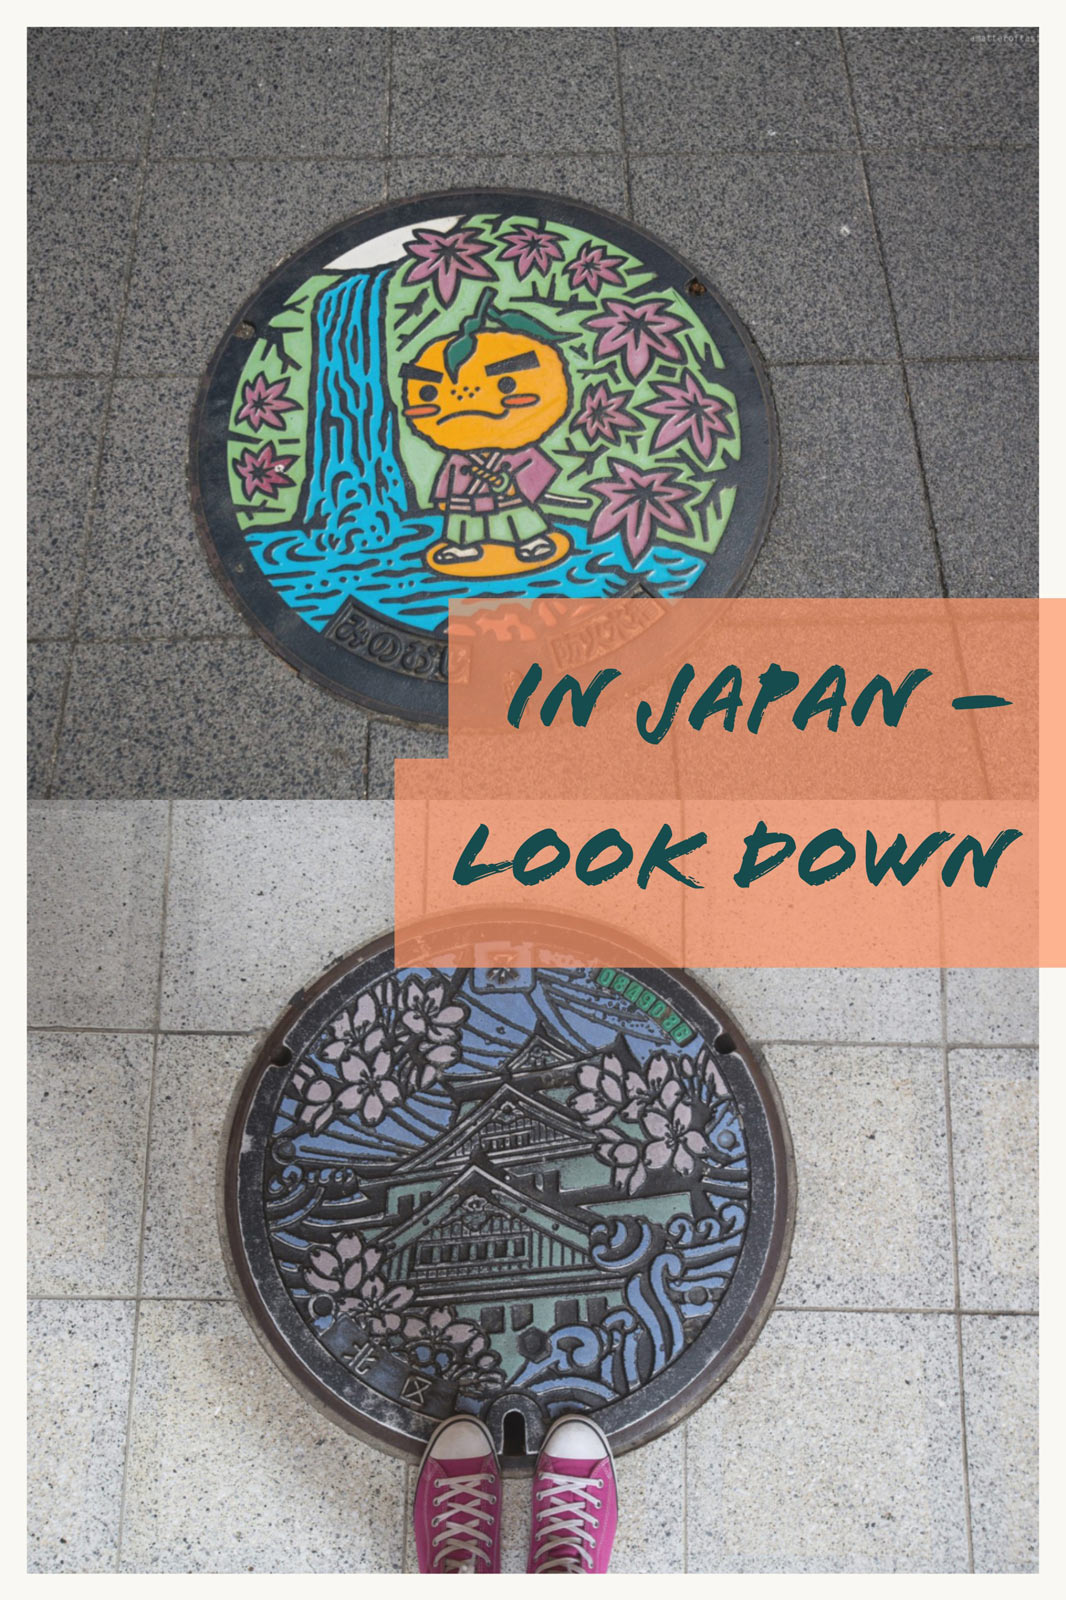 In Japan look down - creative manhole covers